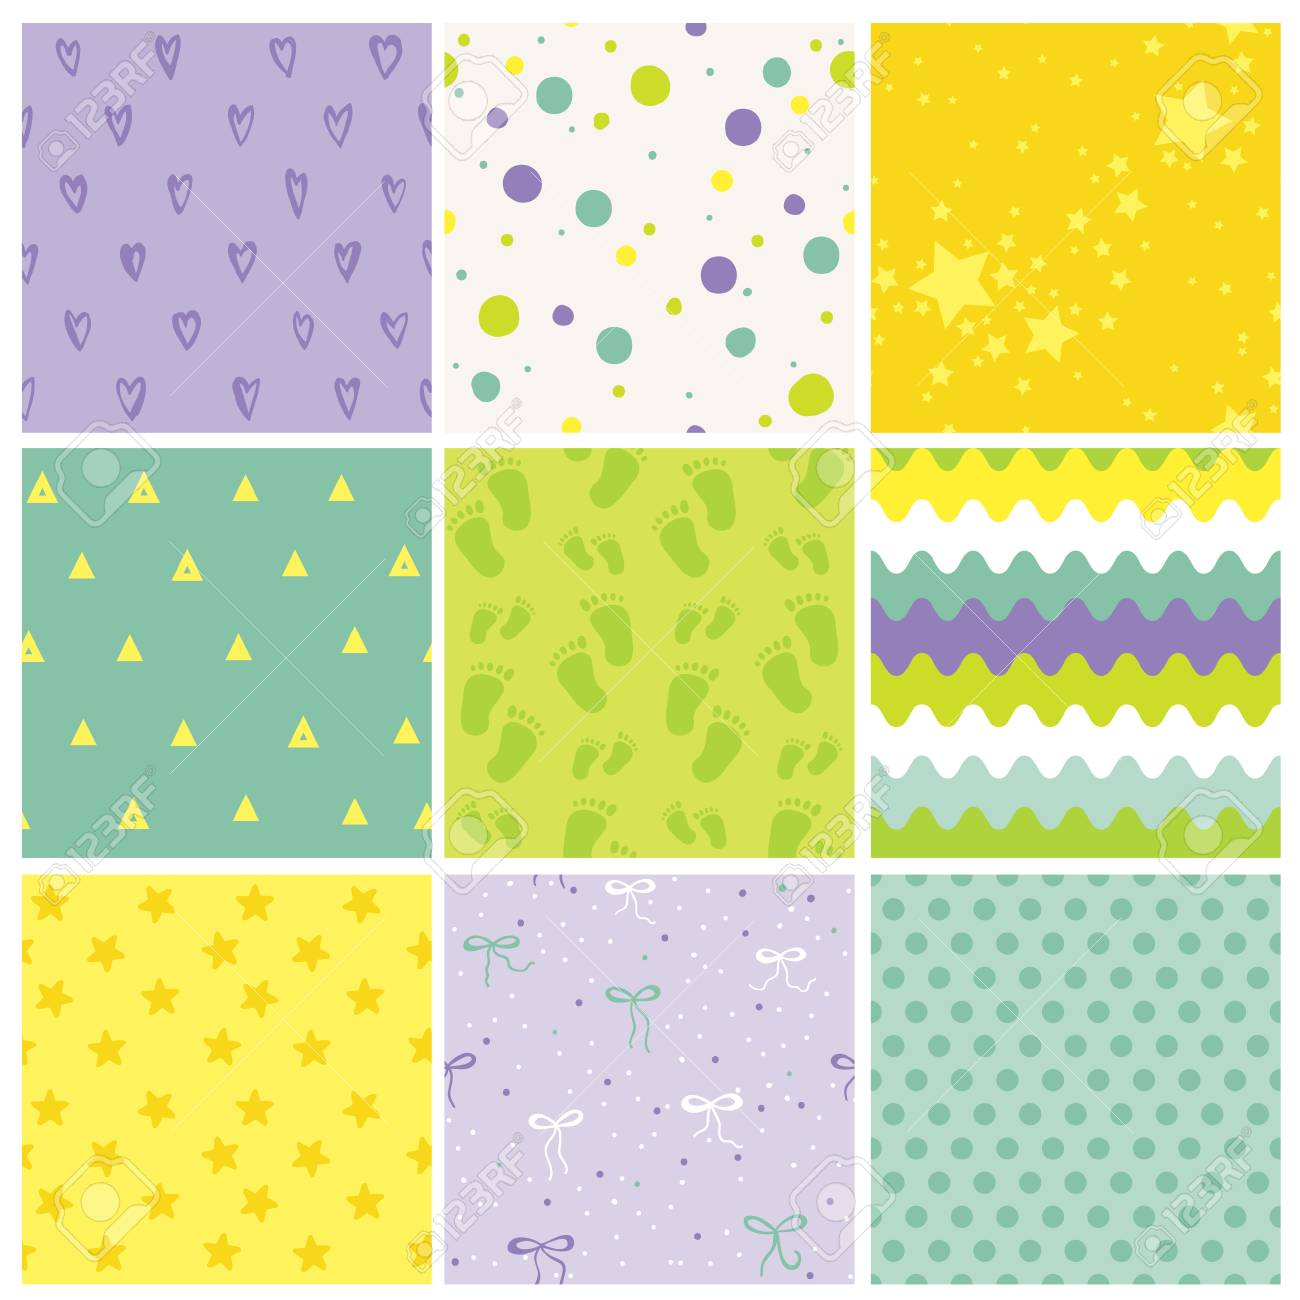 9 Seamless Baby Patterns. Baby Texture. Wallpaper. Vector Background. Geometric Patterns. - 54146553